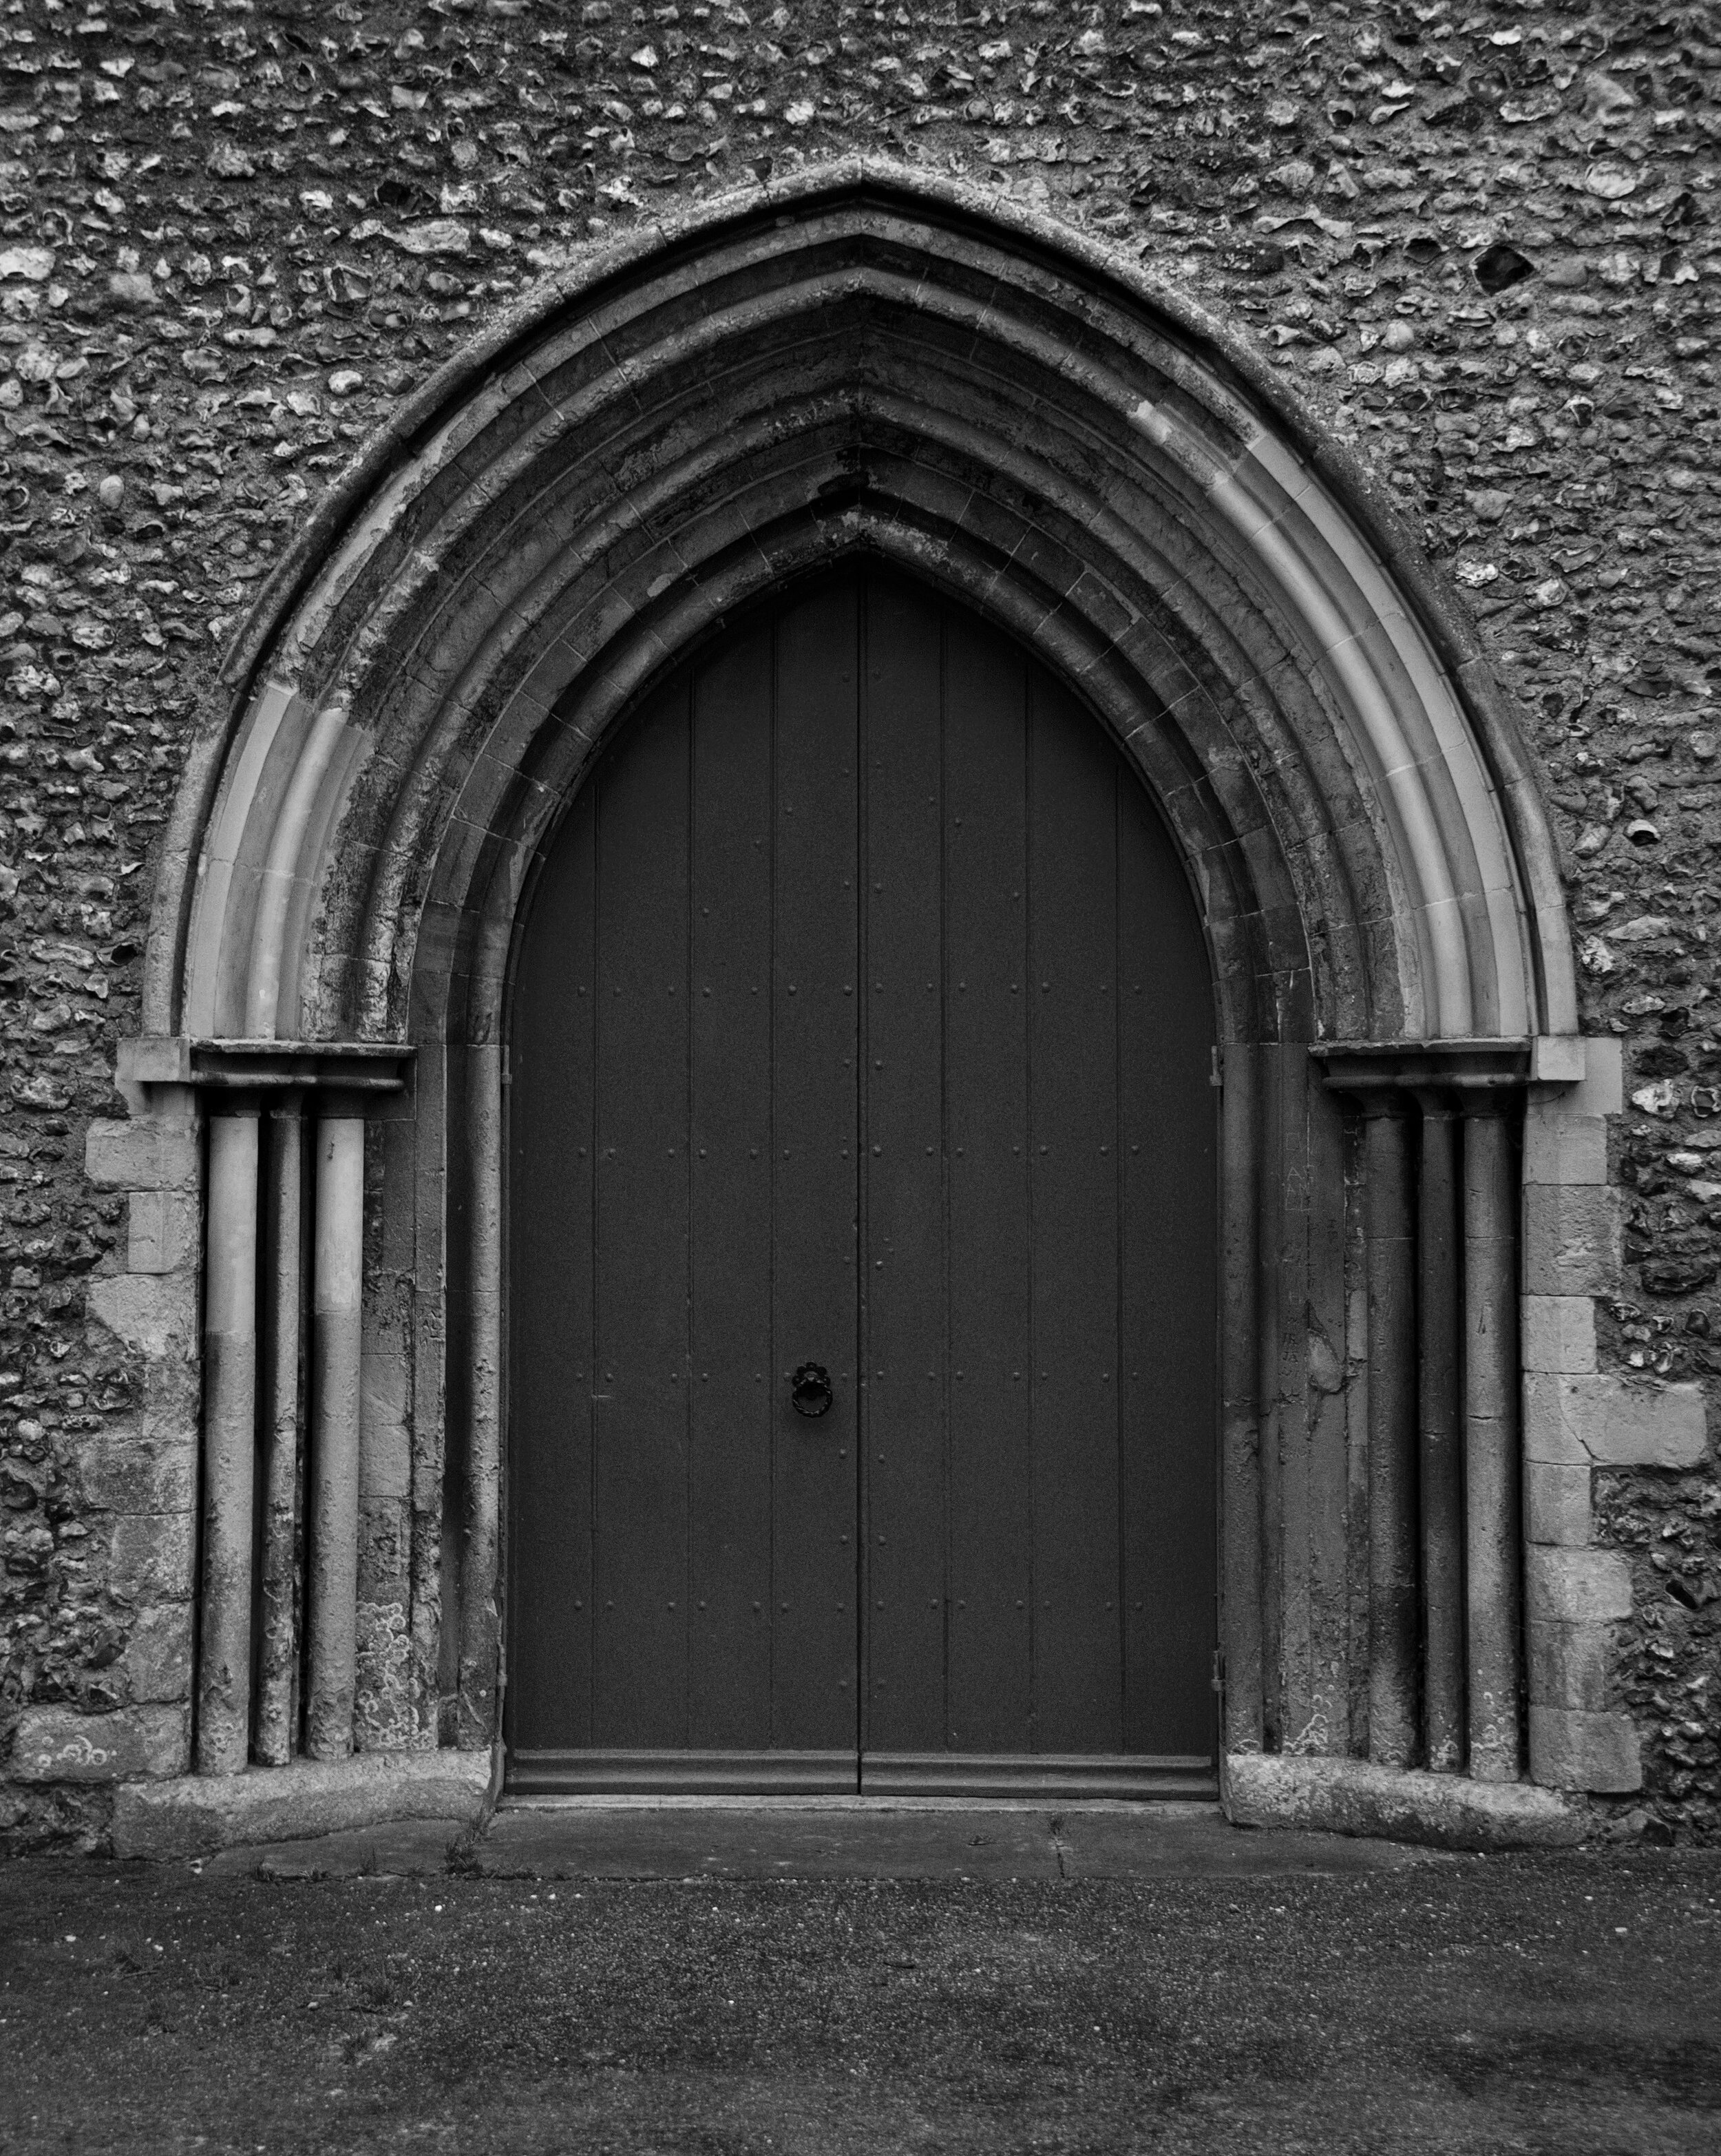 door-to-st-gregory-and-st-martins-church-wye_44678300291_o.jpg